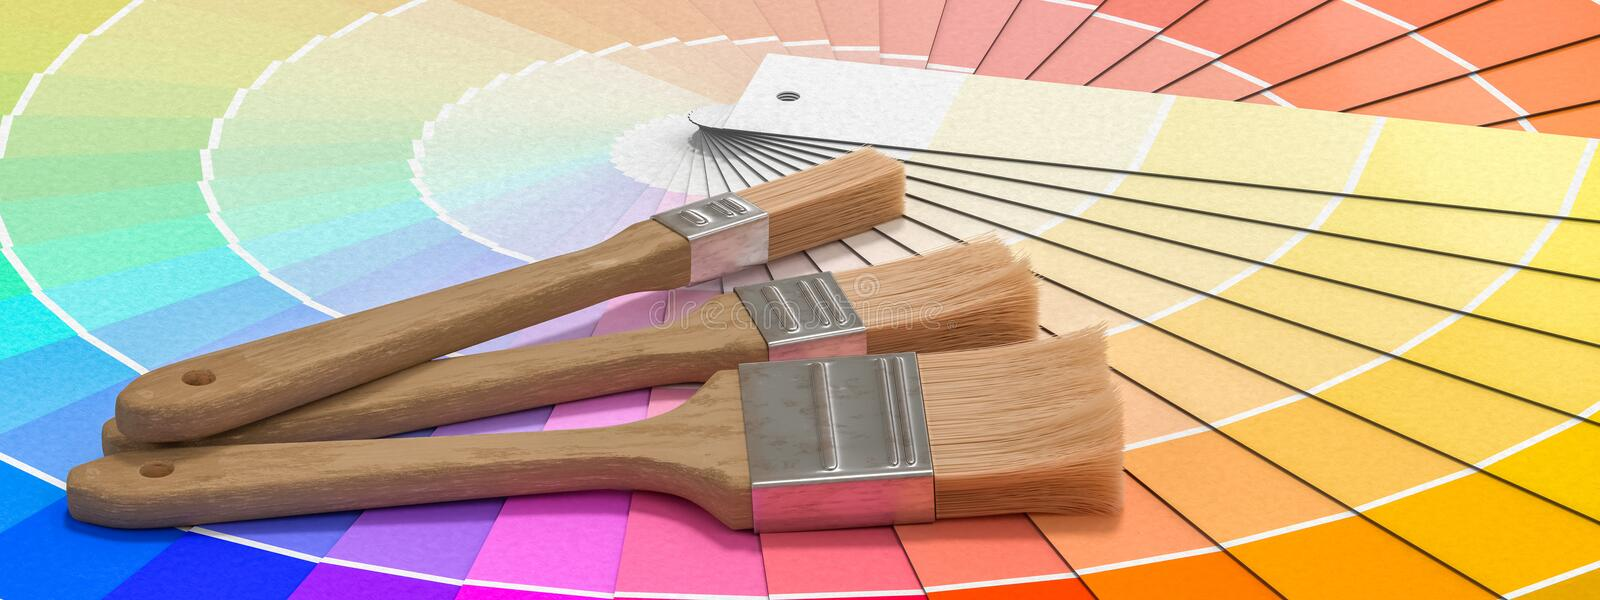 Color palette - guide of paint samples and painting brushes. 3D rendered illustration.  vector illustration